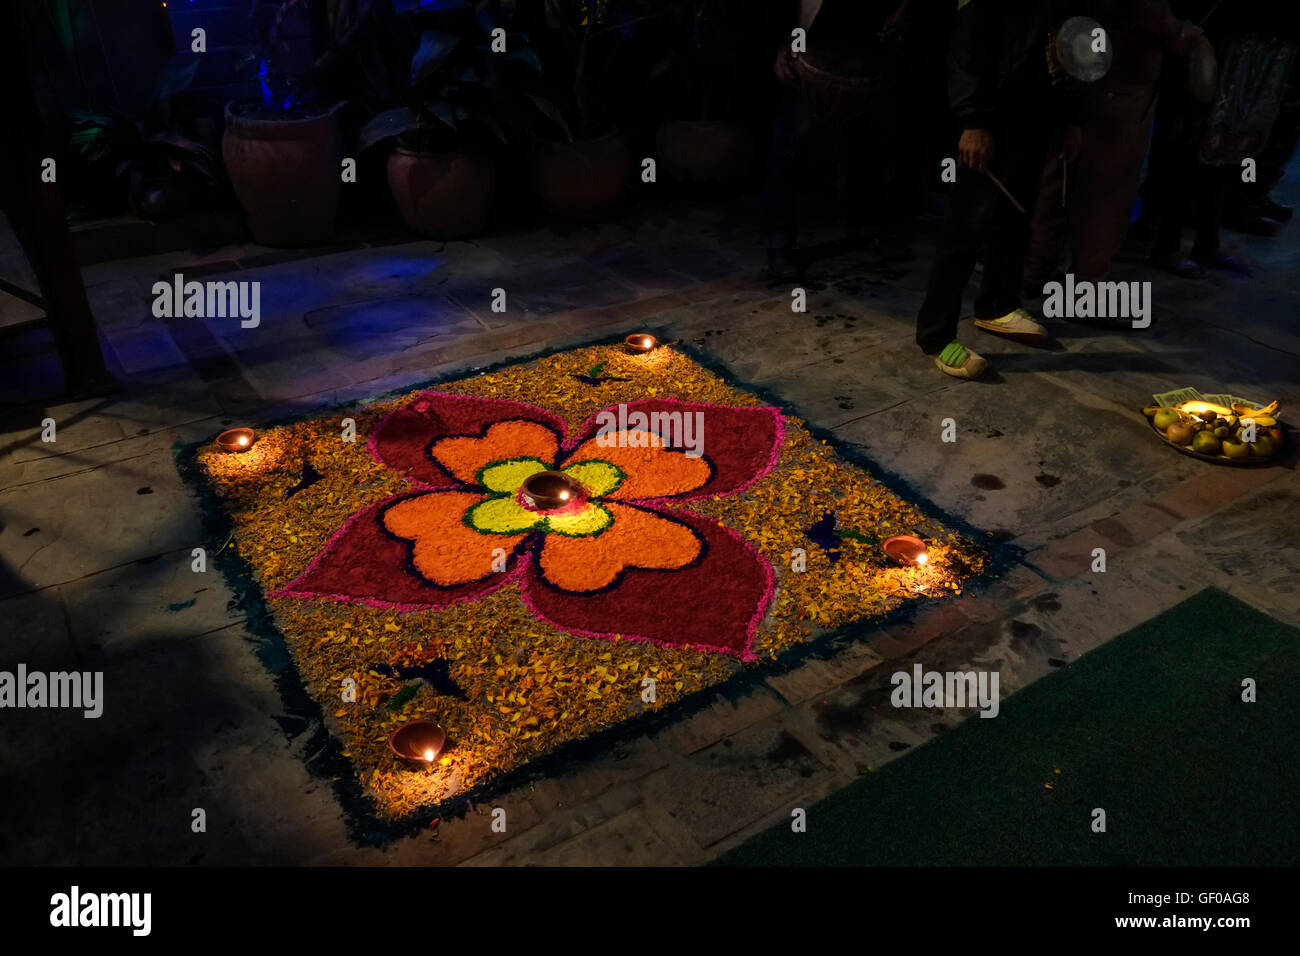 Flower and candle offerings for Diwali festival, Kathmandu, Nepal - Stock Image